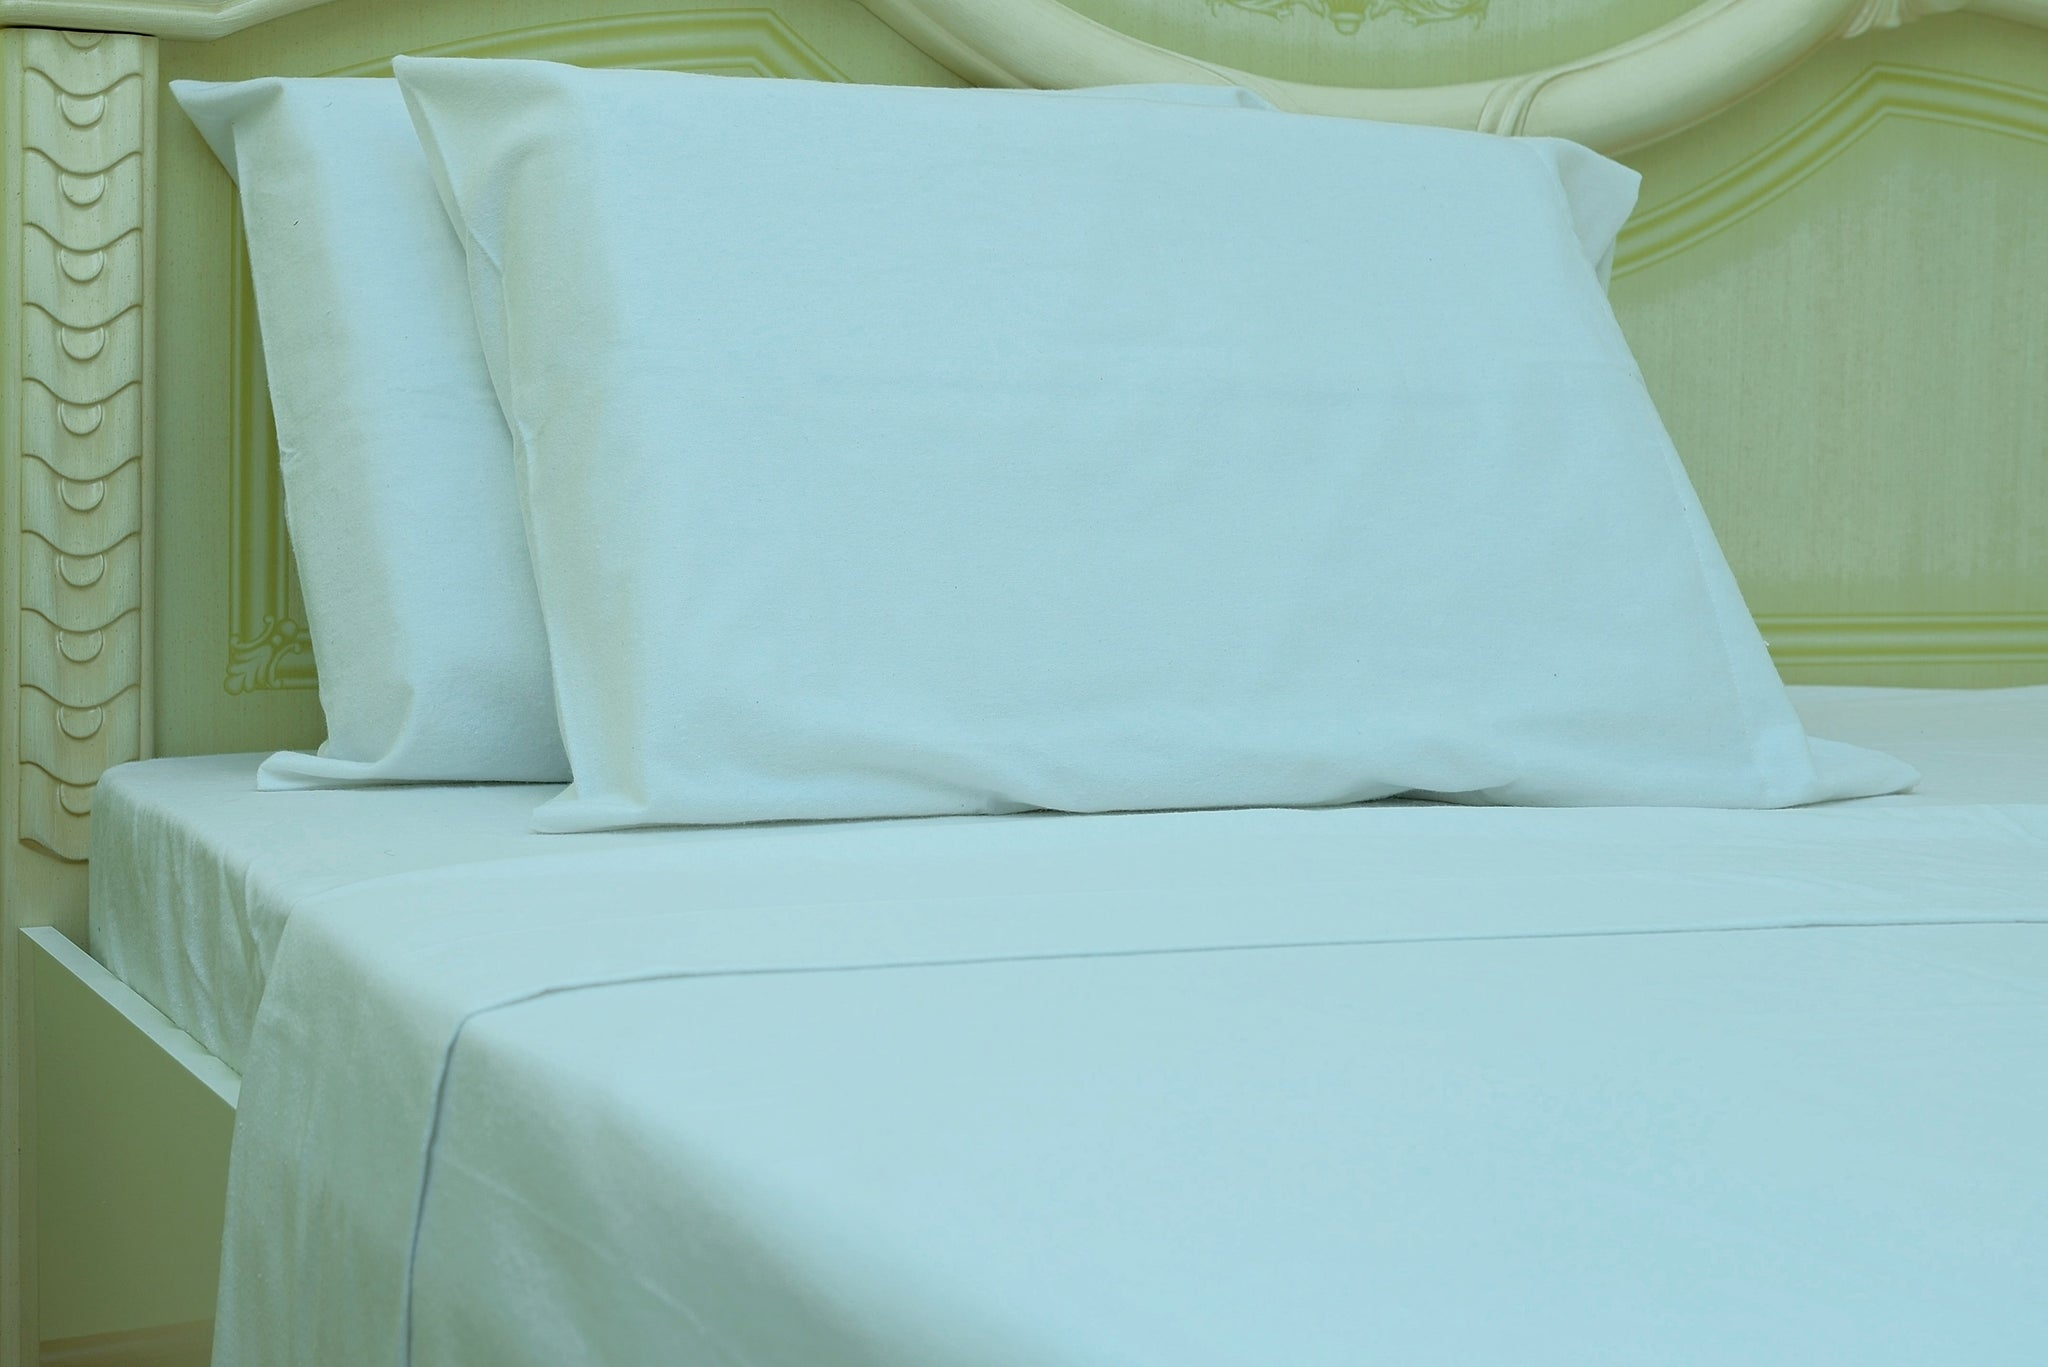 Flannel Fitted Sheet - %100 Cotton, Brushed, Top Sheet -White- Queen Size